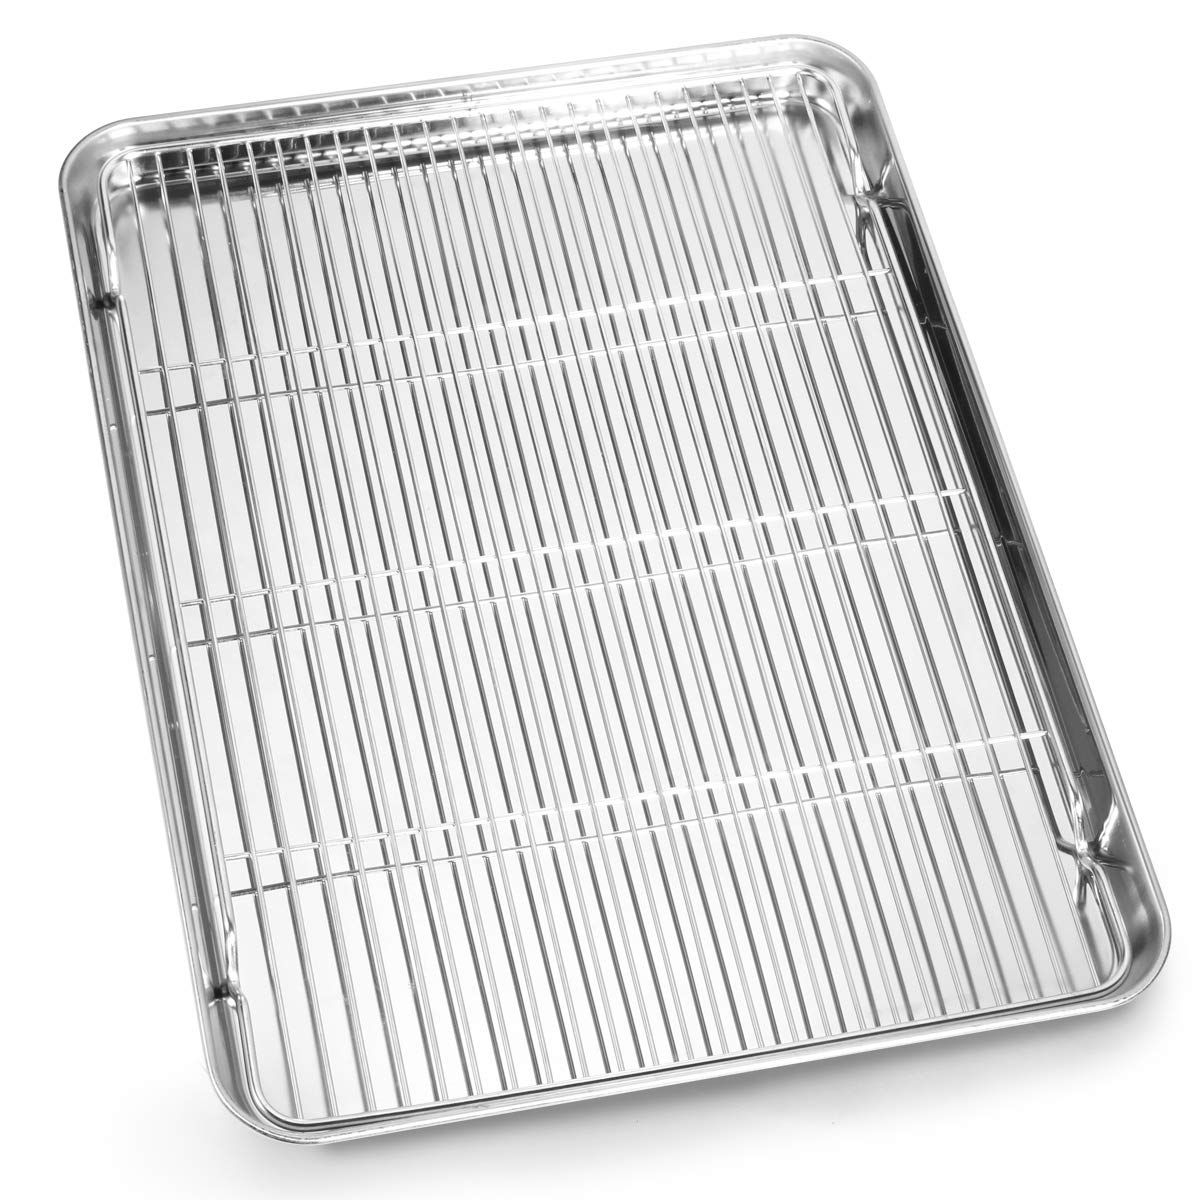 Bastwe Cookie Sheet And Cooling Rack Set 16 Inch Stainless Steel